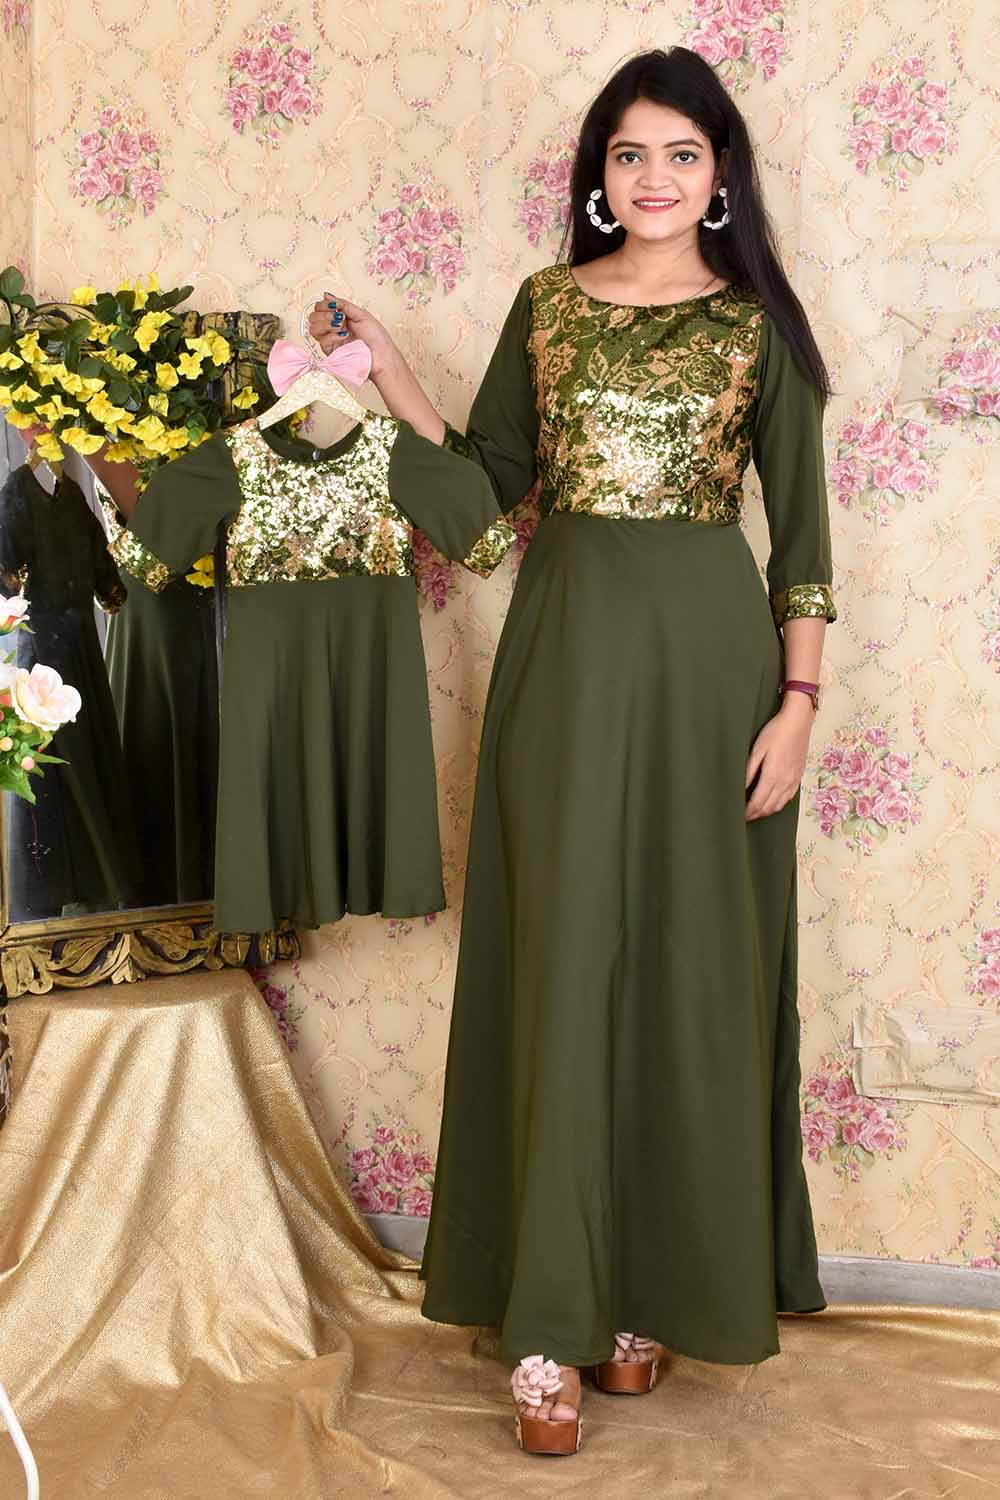 Olive Green Mother-Daughter Gown Combo